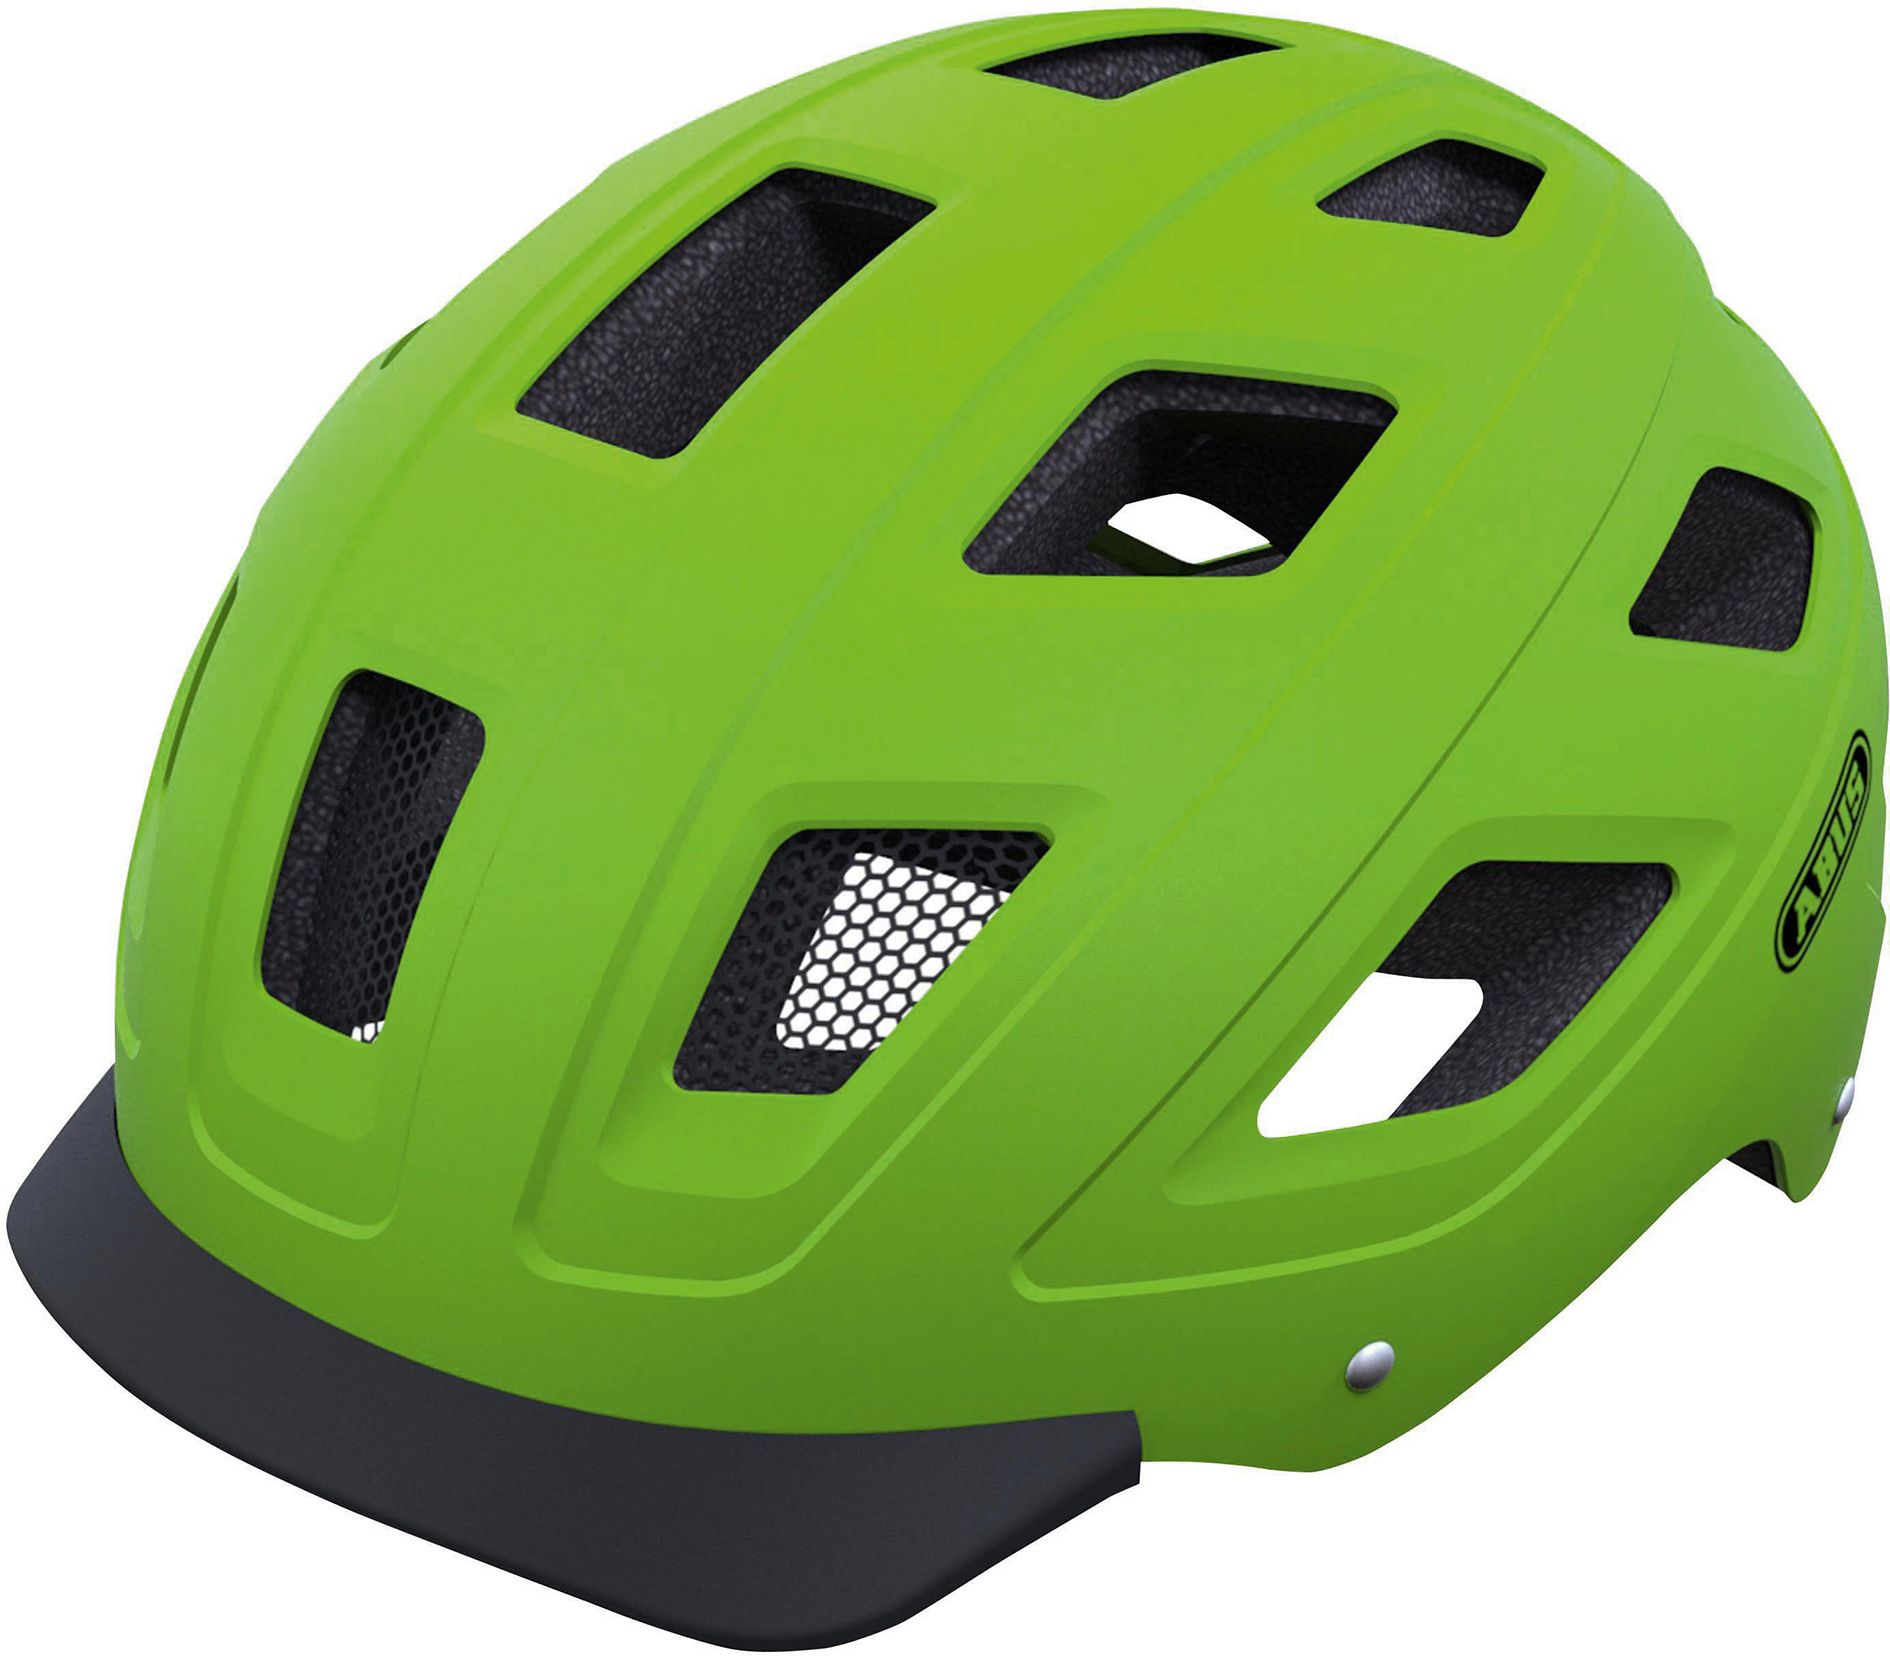 Explore Bike Helmets Bicycle Parts and more